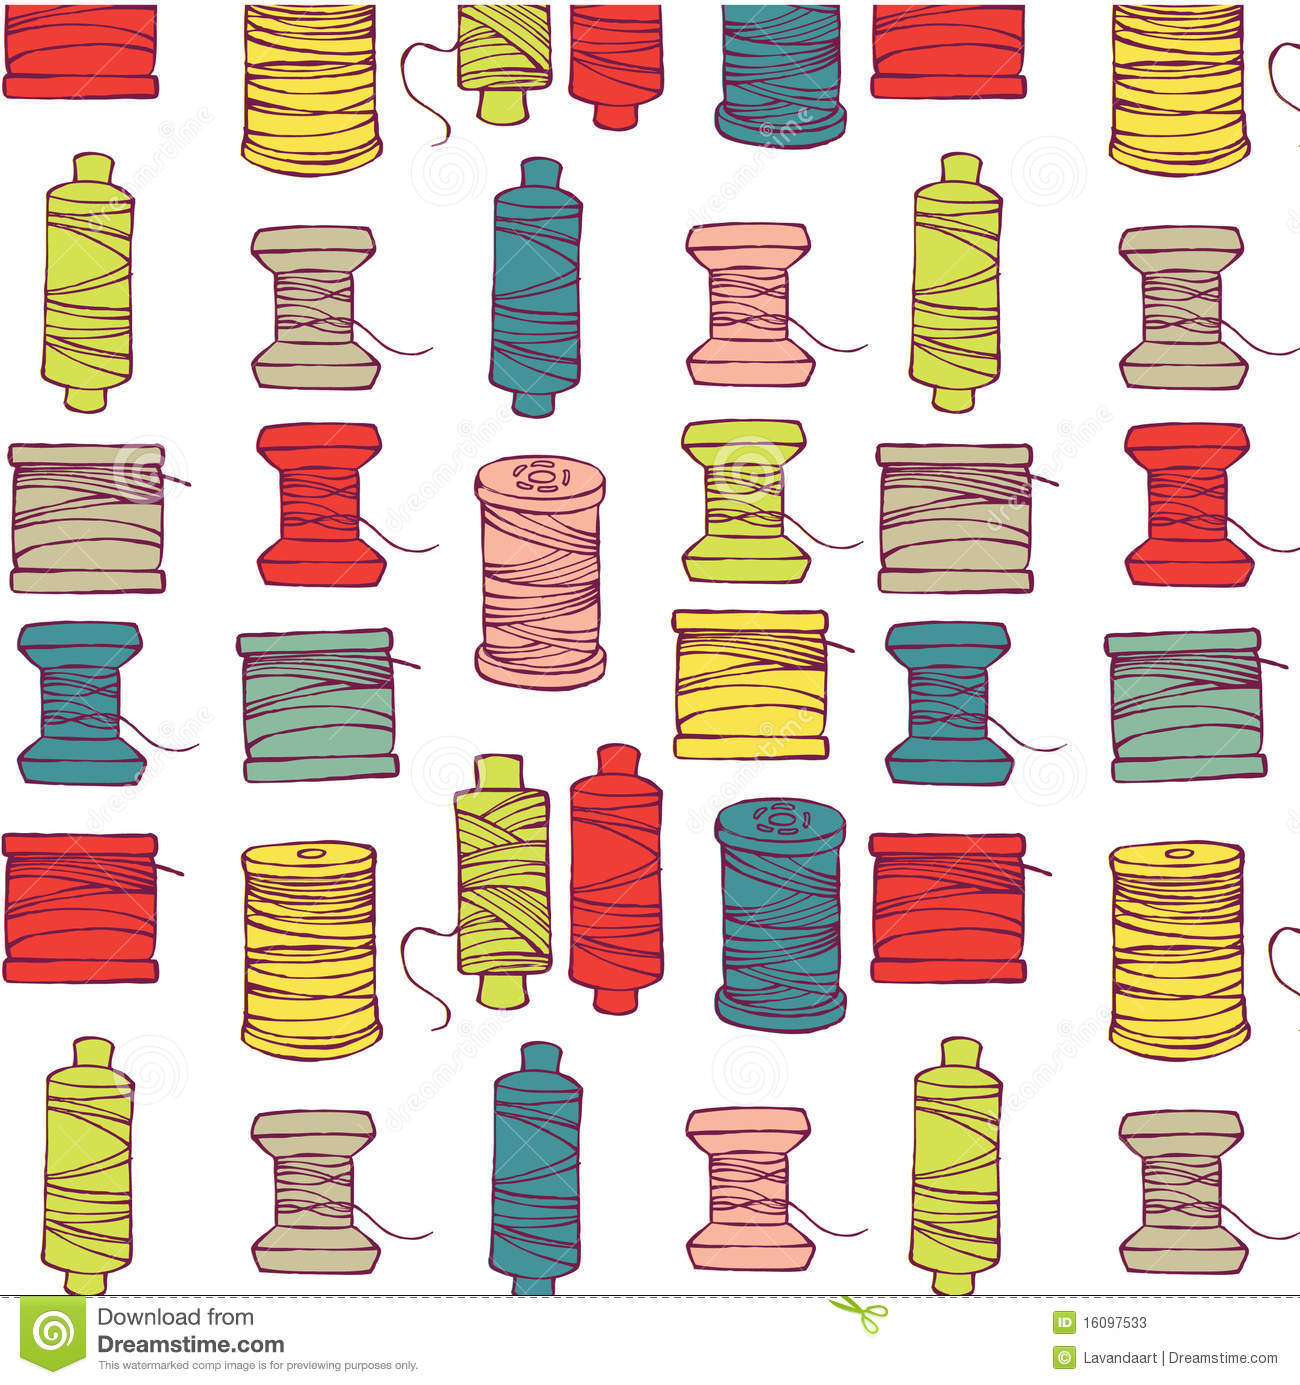 Spools of thread pattern stock photos image 16097533 for Thread pool design pattern